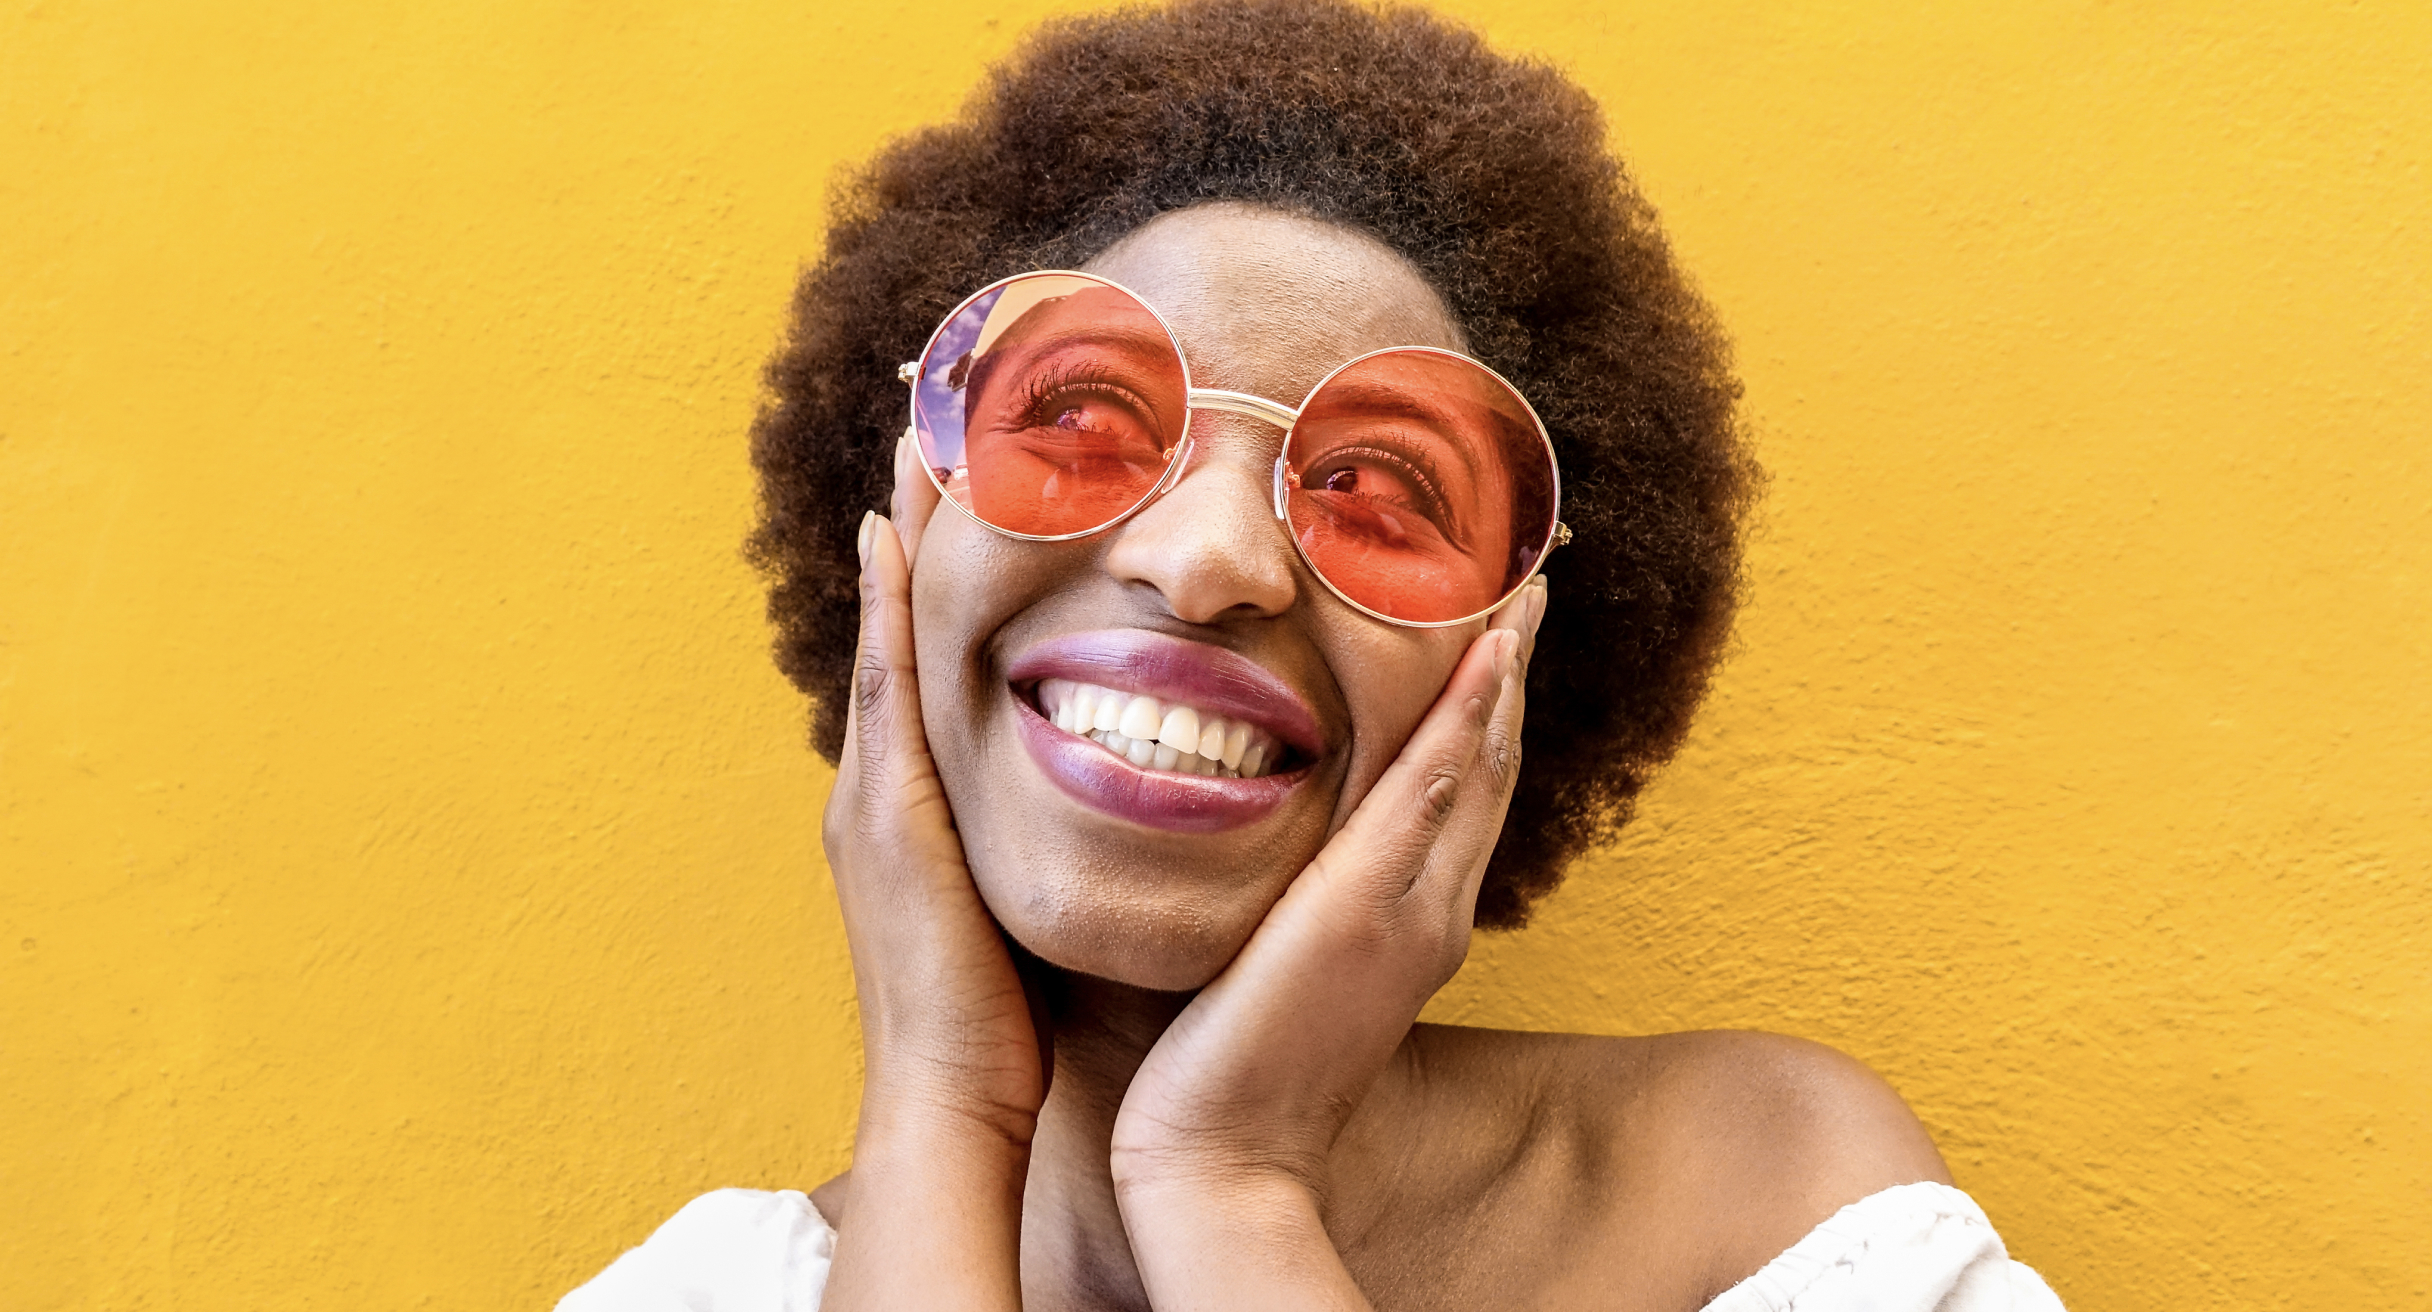 A Black woman in large, tinted glasses smiles and holds her cheeks in front of a yellow wall